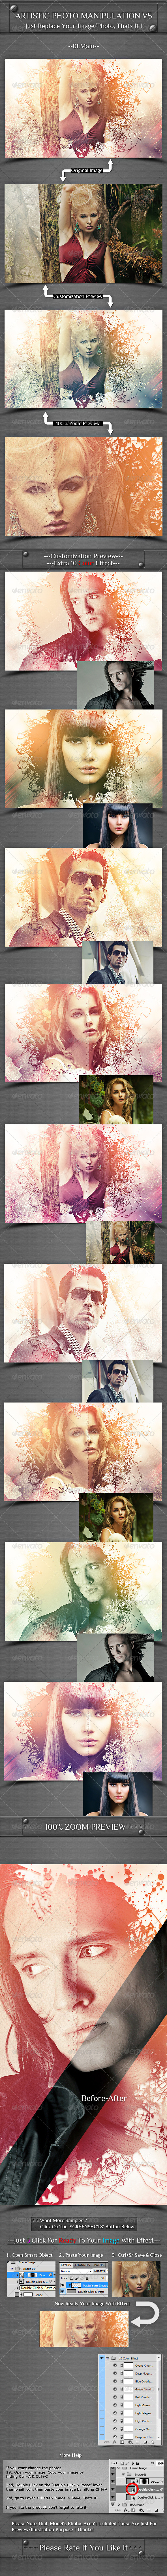 Artistic Photo Manipulation V5 - Photo Templates Graphics